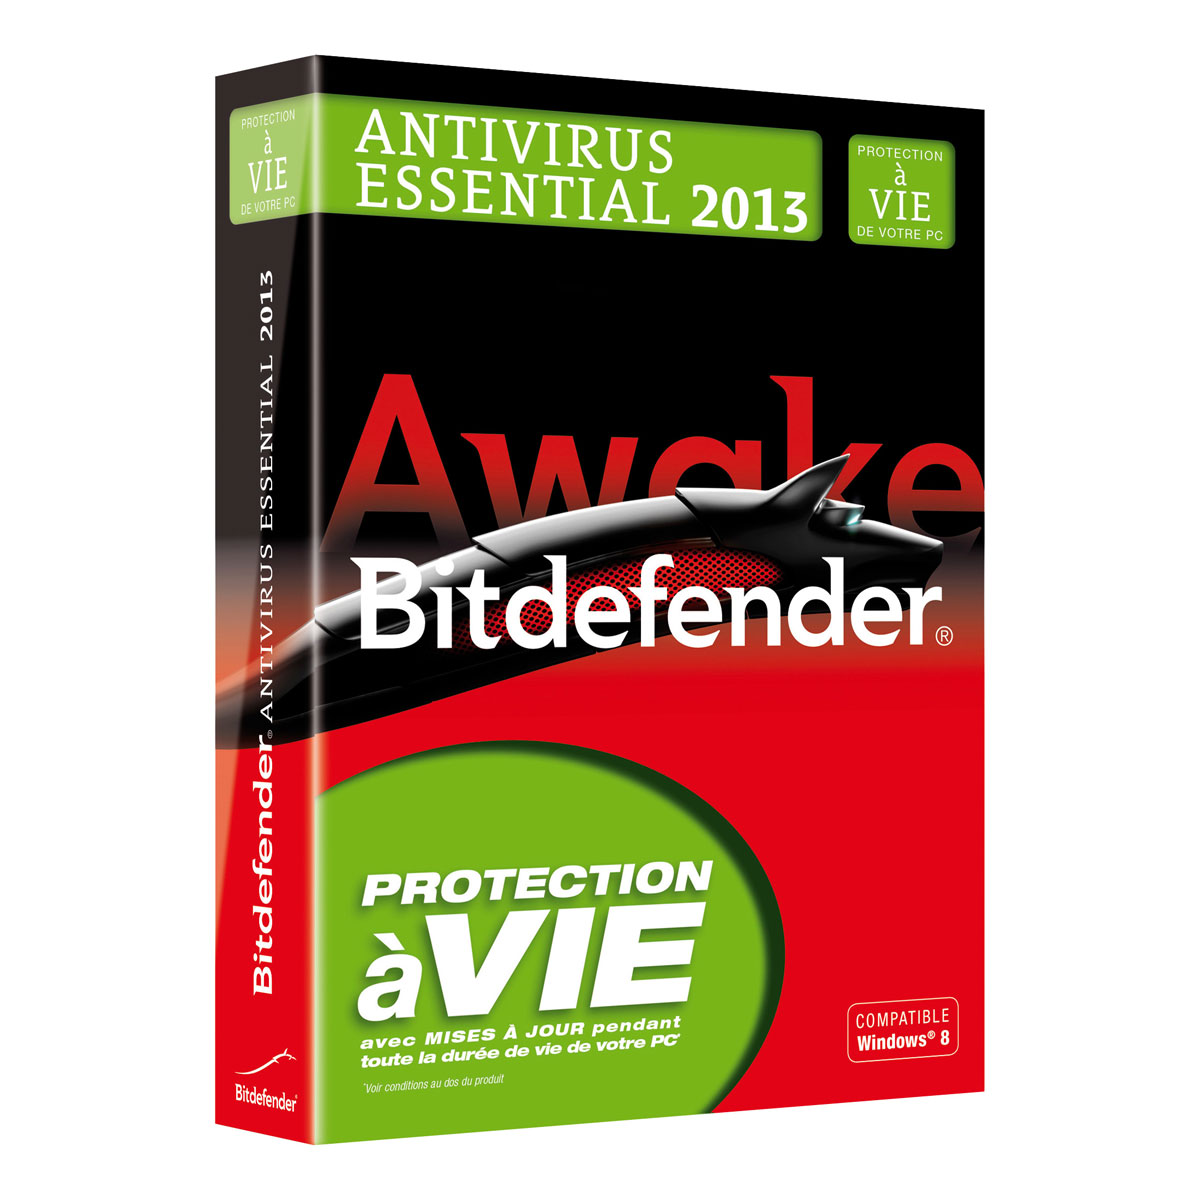 bitdefender antivirus essential 2013 licence vie 1 poste logiciel antivirus bitdefender. Black Bedroom Furniture Sets. Home Design Ideas